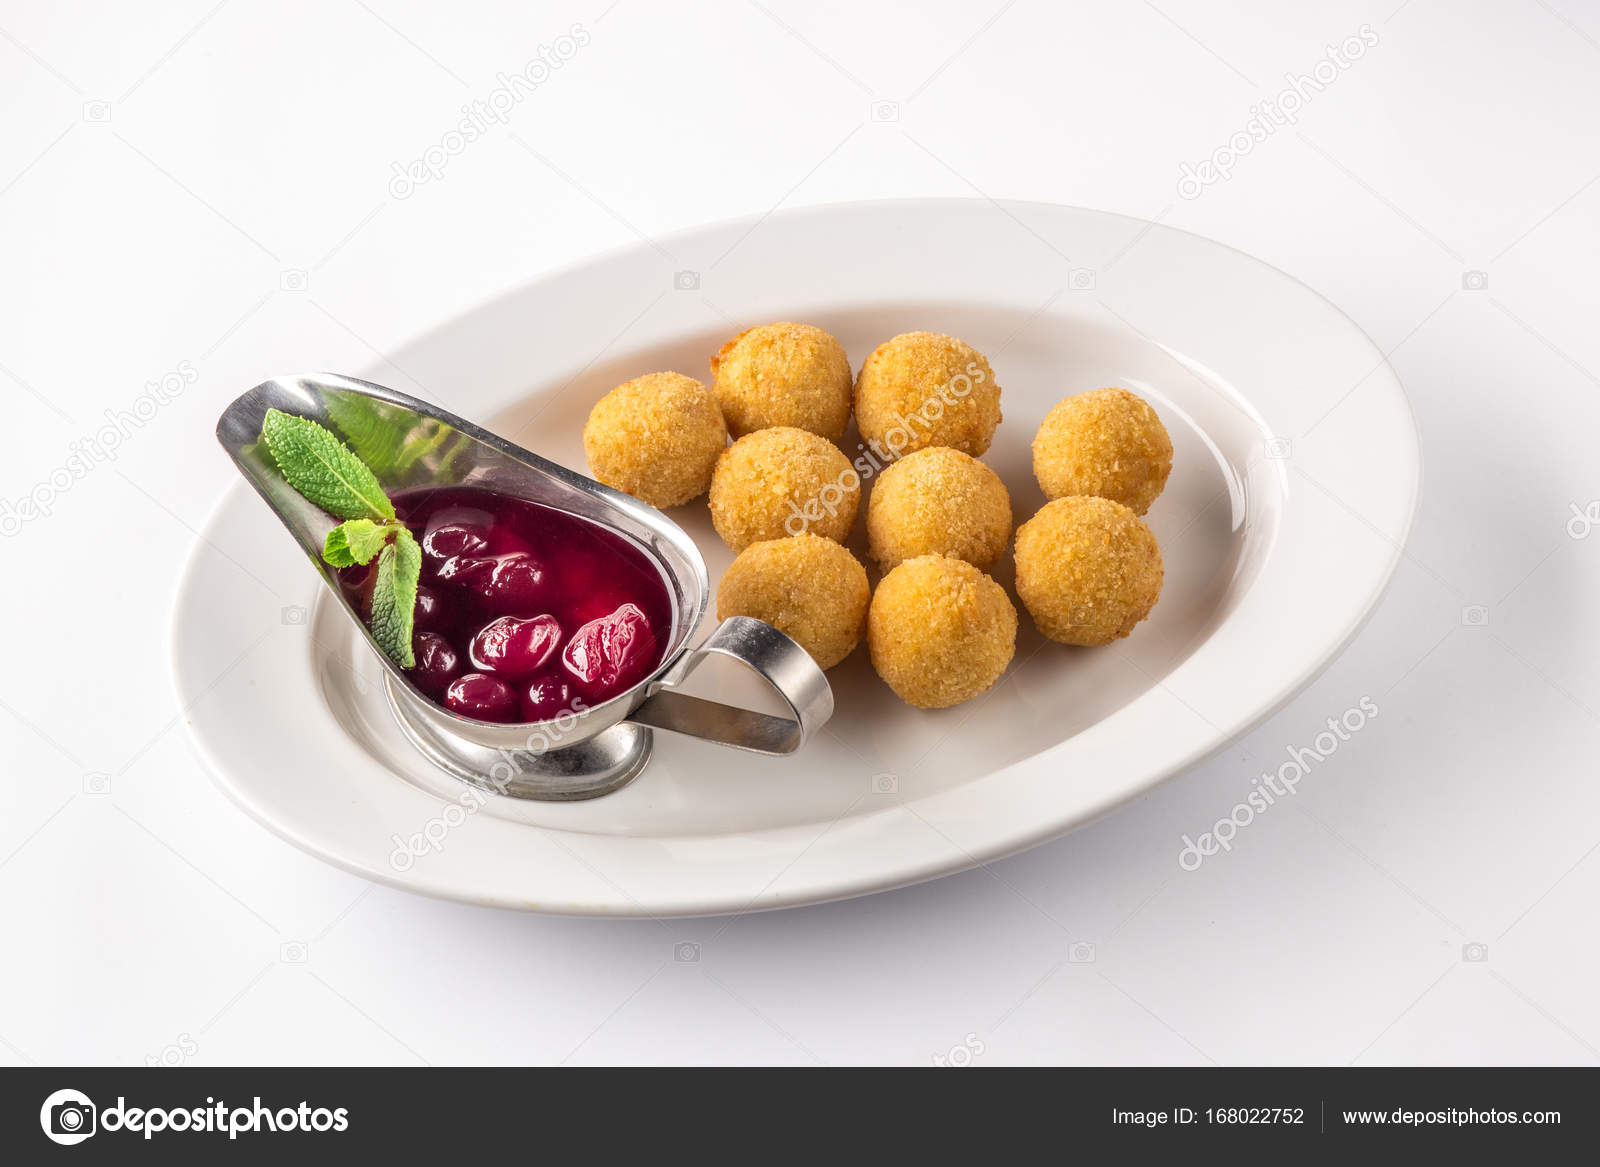 Cheese balls appetizers with sauce on a white plate u2014 Stock Photo & Cheese balls appetizers with sauce on a white plate u2014 Stock Photo ...